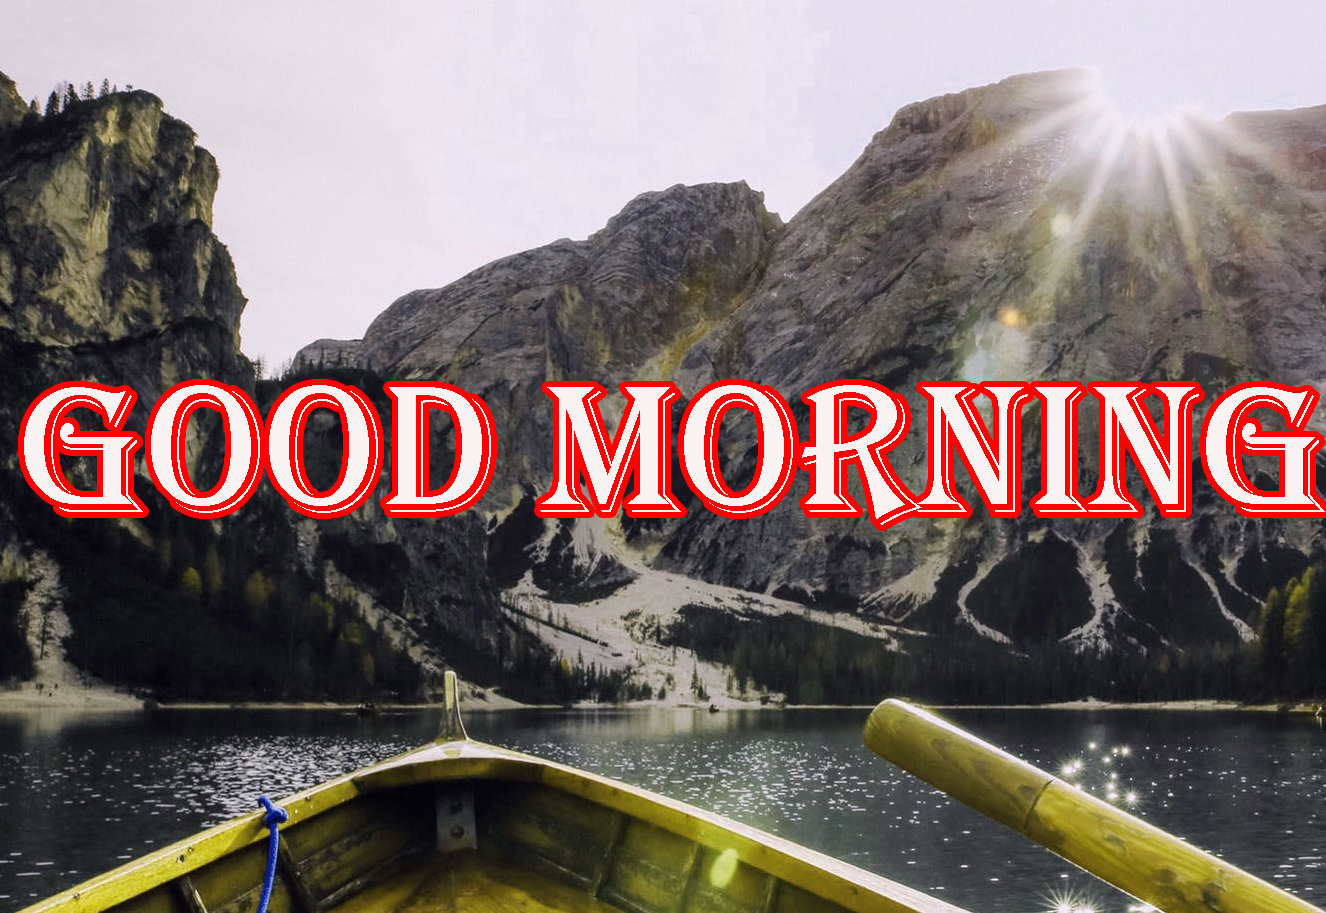 GOOD MORNING IMAGES PICTURES PHOTO FREE DOWNLOAD